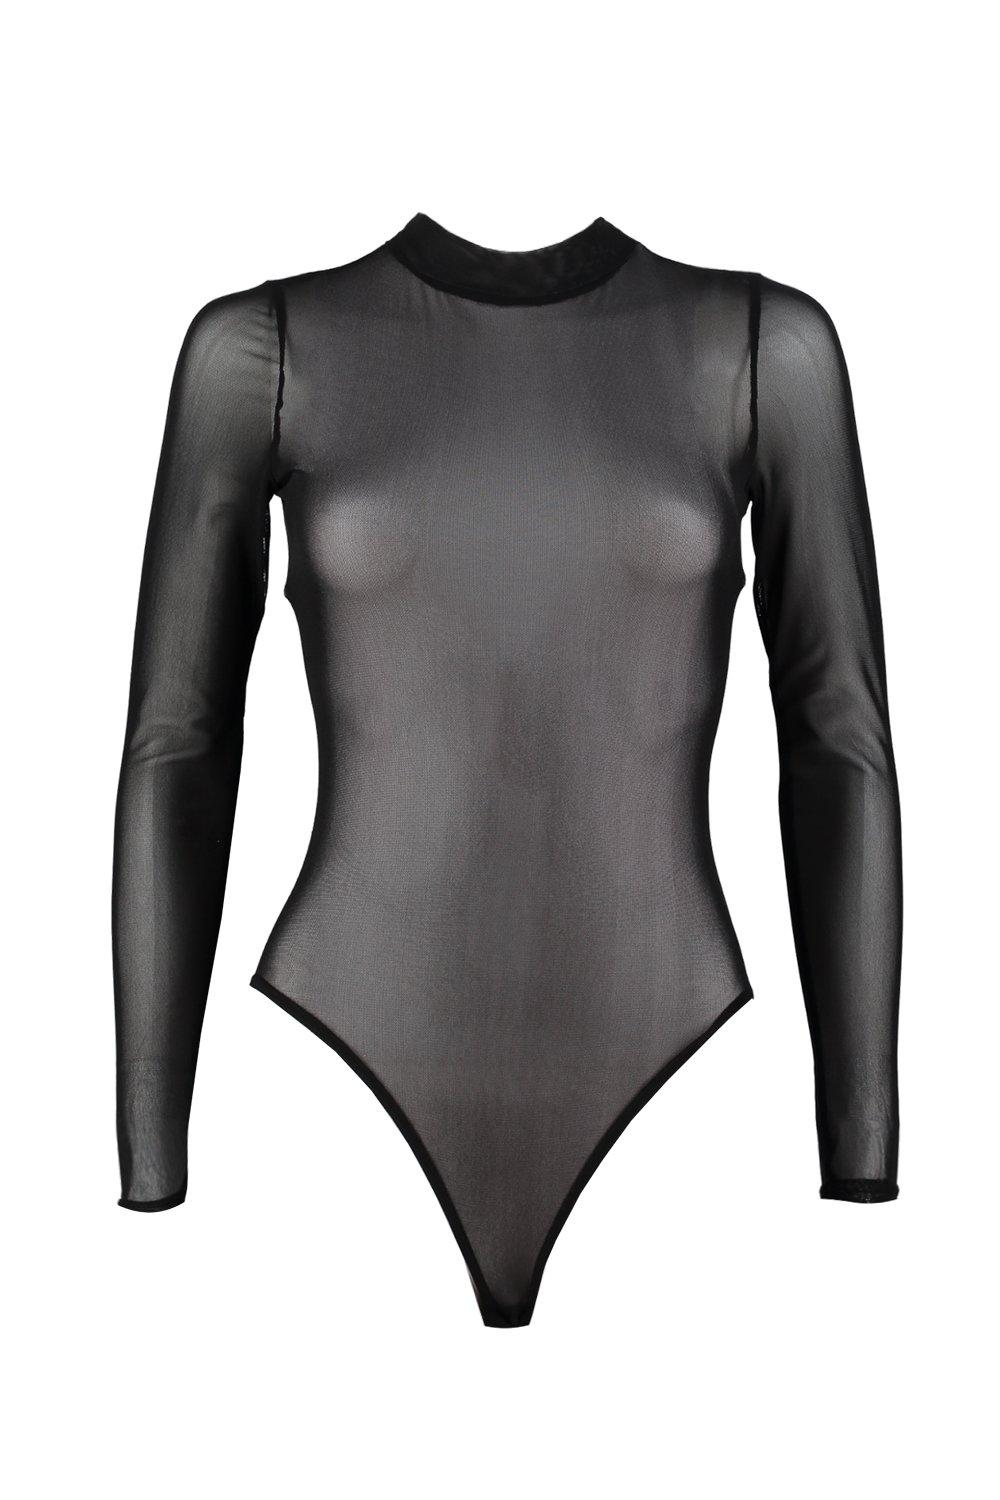 f65665fcf85 Womens Black Petite High Neck Mesh Bodysuit. Hover to zoom. Close video